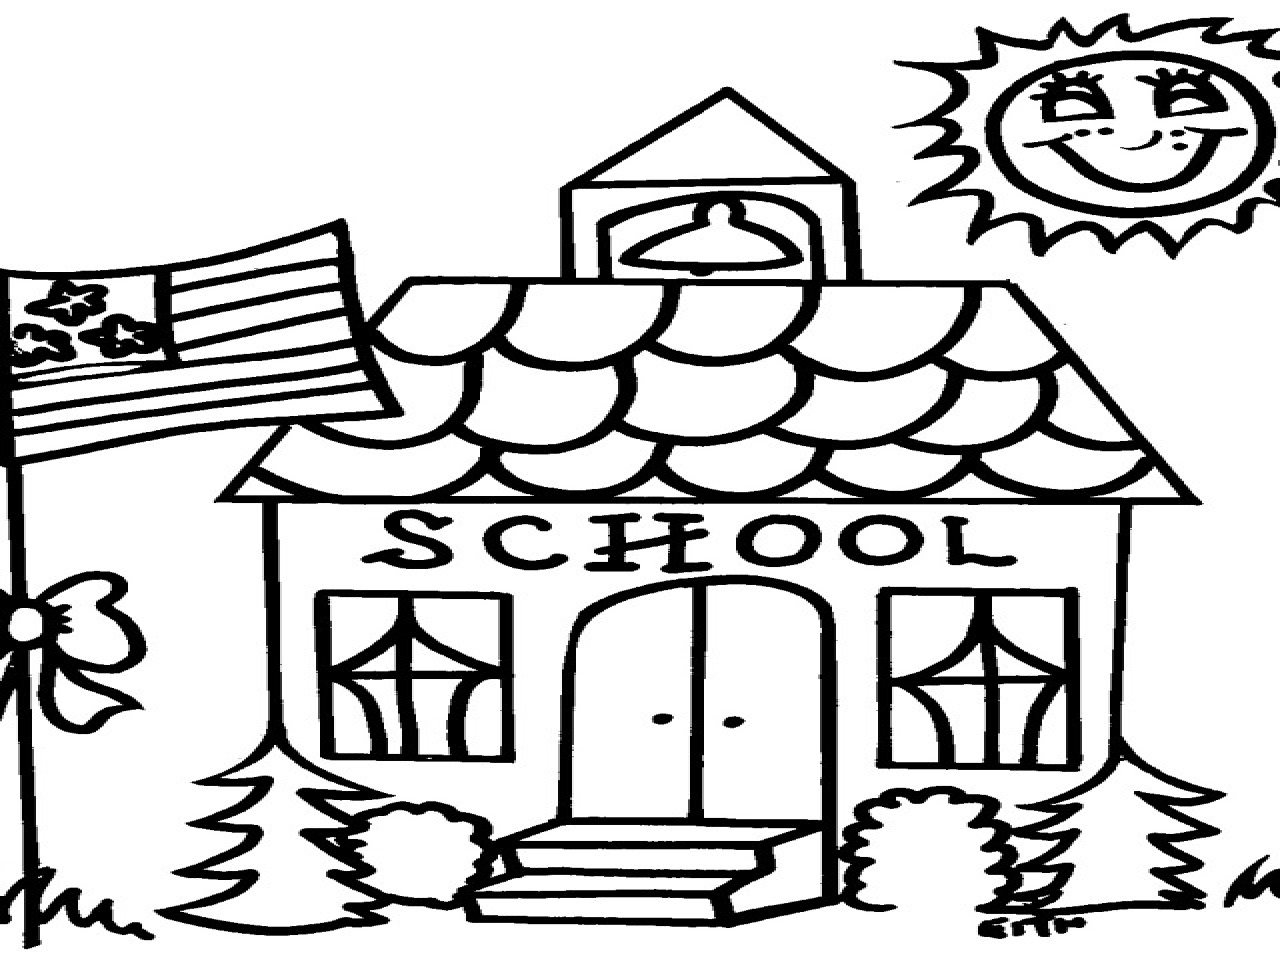 School House Coloring Pages Printable | Free Coloring Sheets